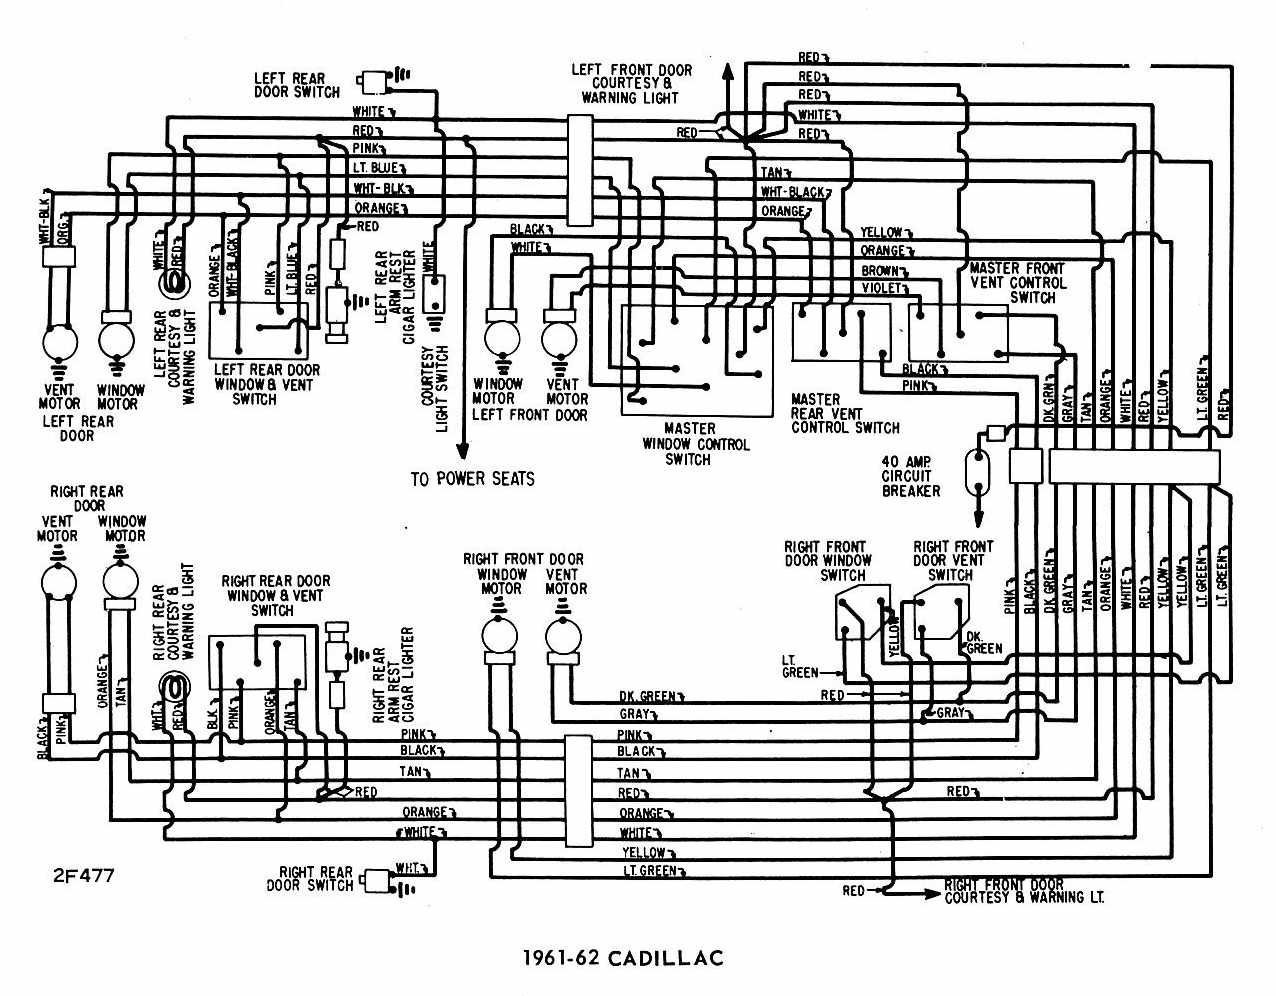 Cadillac+1961 1962+Windows+Wiring+Diagram cadillac 1961 1962 windows wiring diagram all about wiring diagrams 1961 Impala at creativeand.co